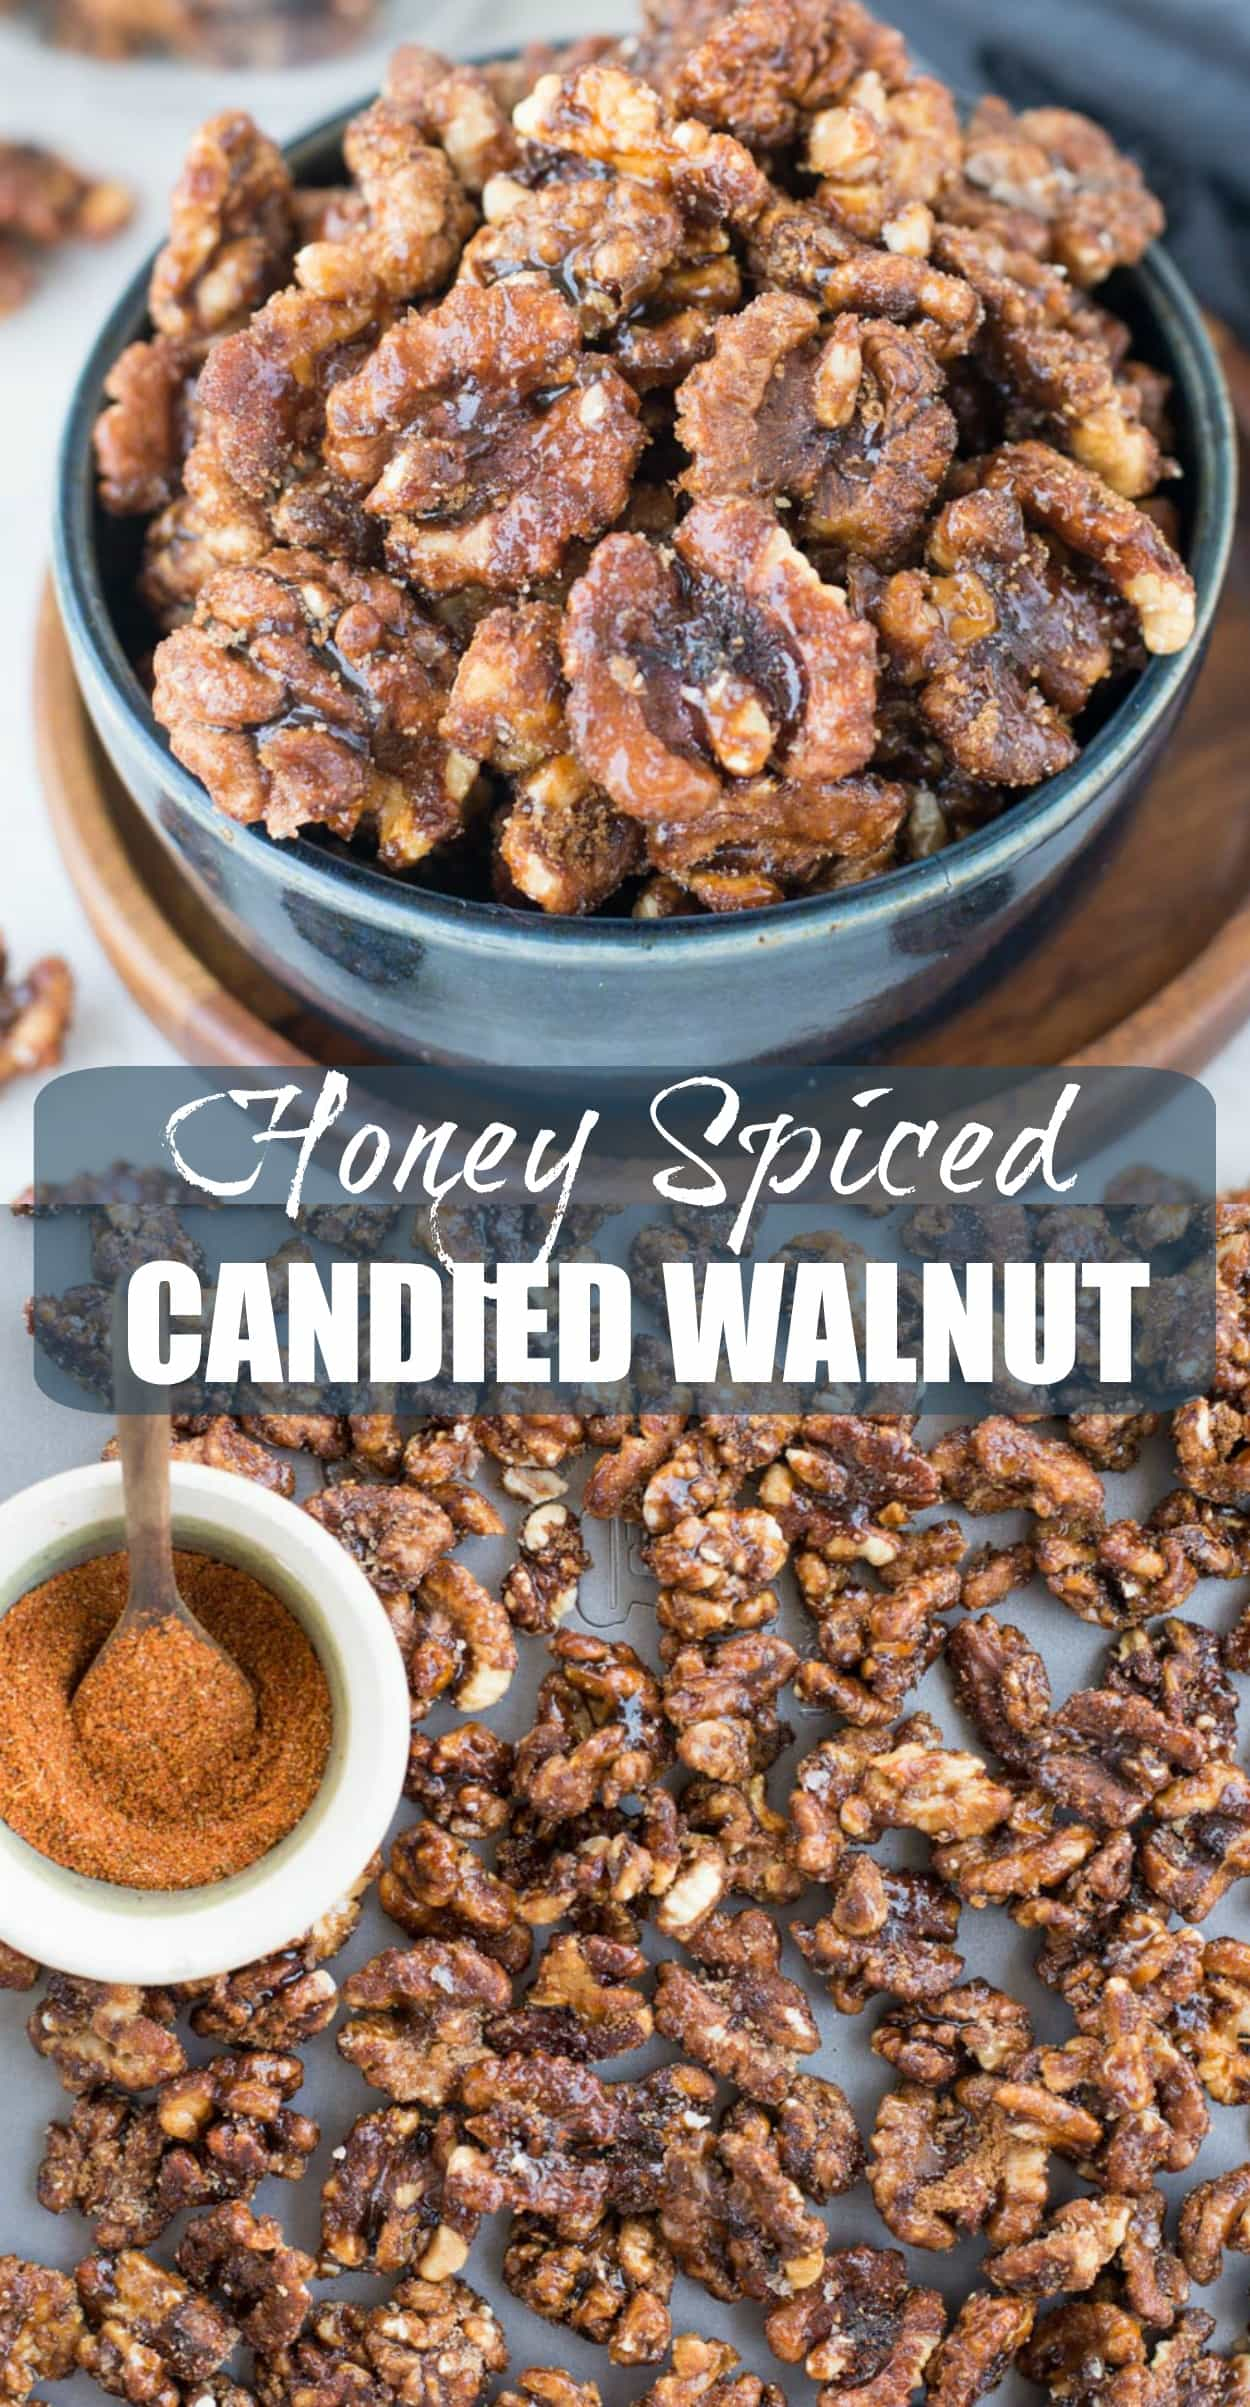 These Candied walnuts are roasted with honey and spices till crunchy, then tossed in brown sugar. Honey Spiced Candied Walnuts are addictive snacks, can be added to salads and perfect for gifting this holiday season.